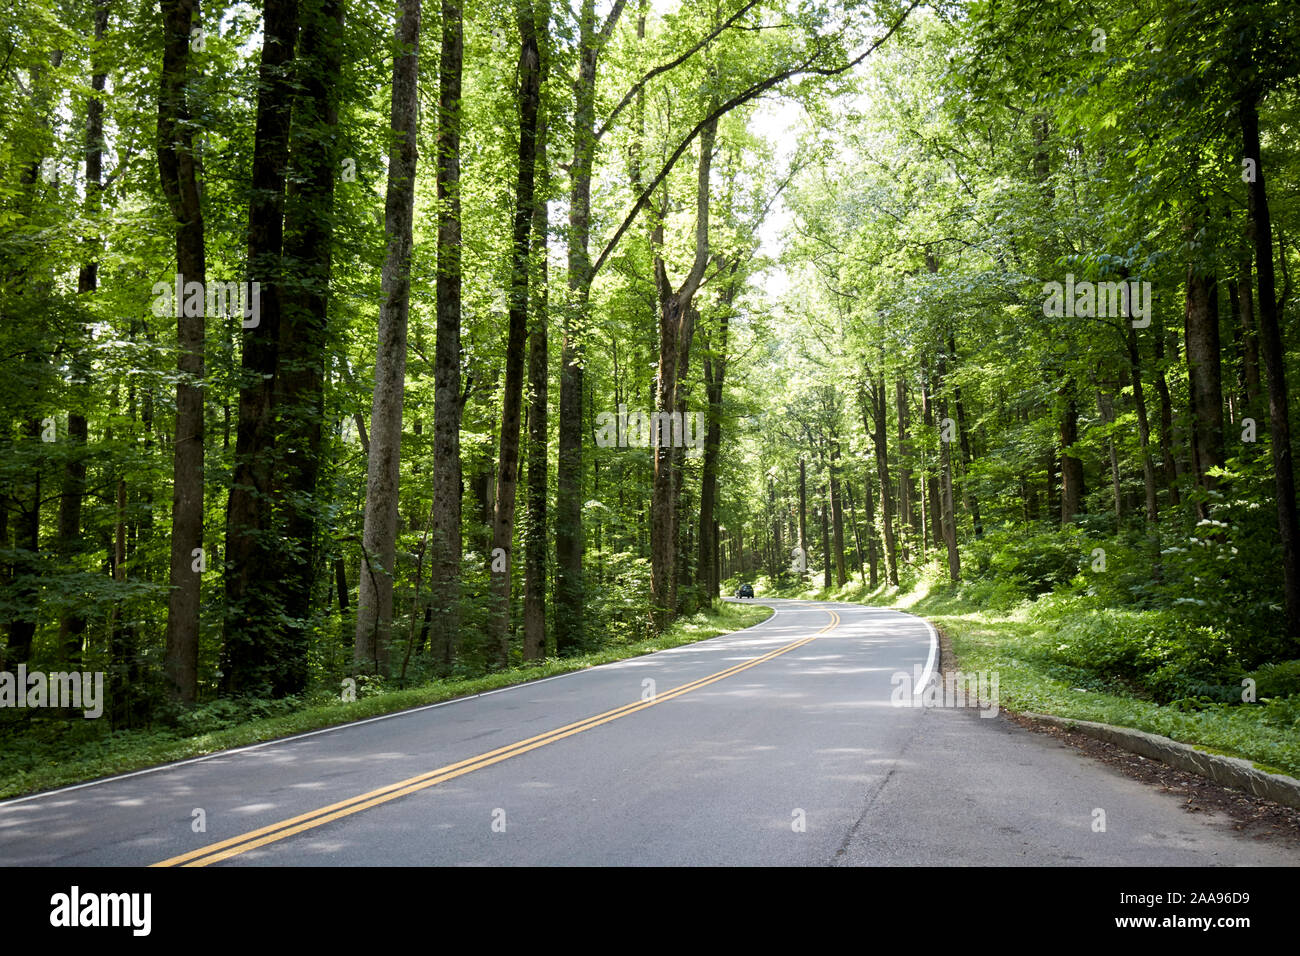 car in the distance on parkway us 441 highway route through great smoky mountains national park usa Stock Photo